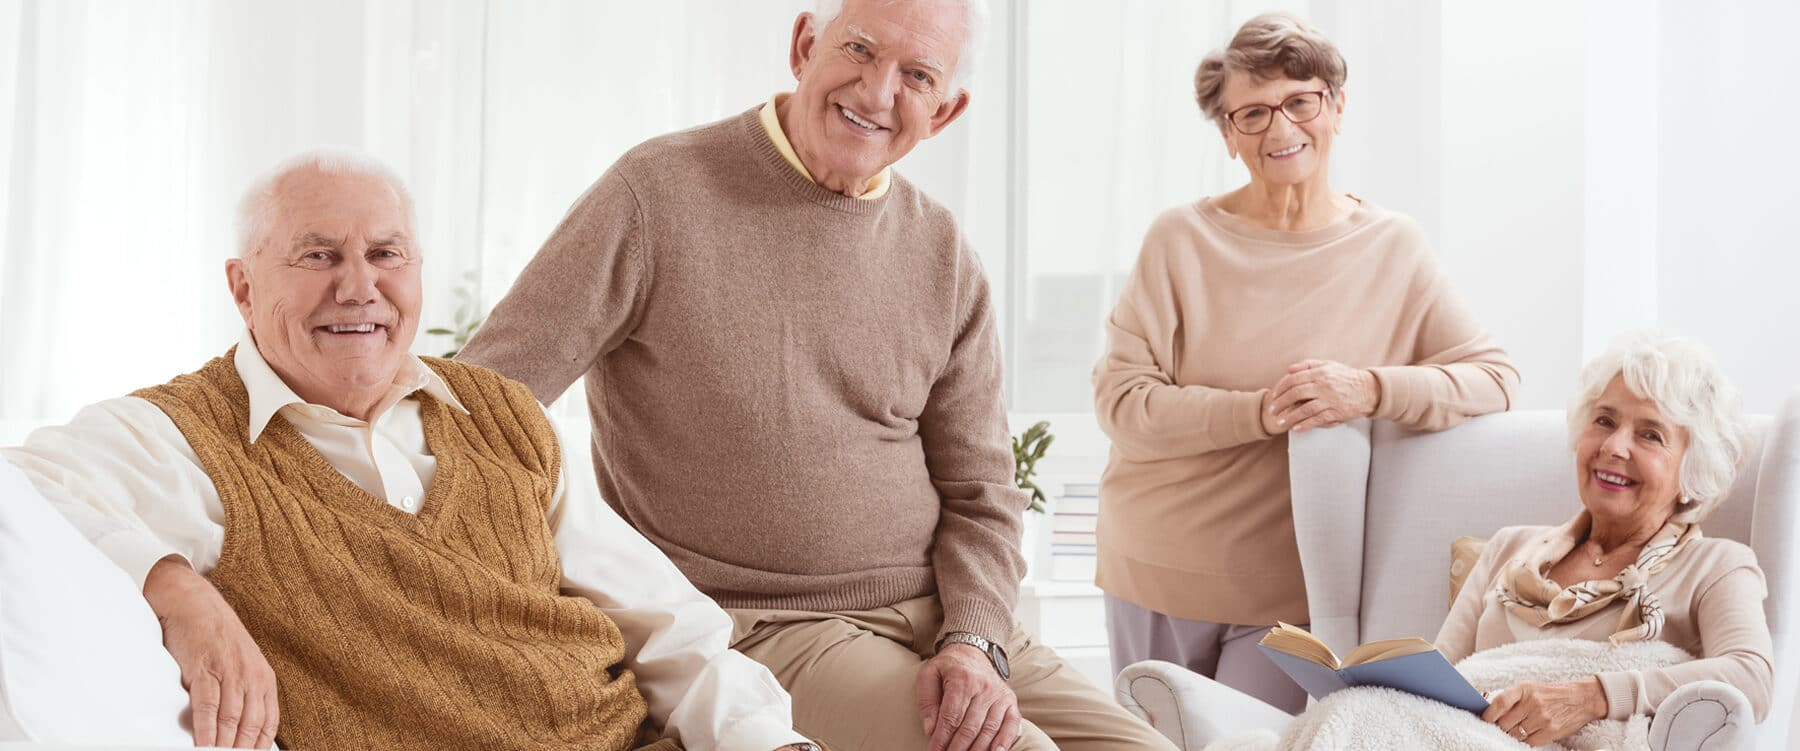 four older people smiling enthusiastically